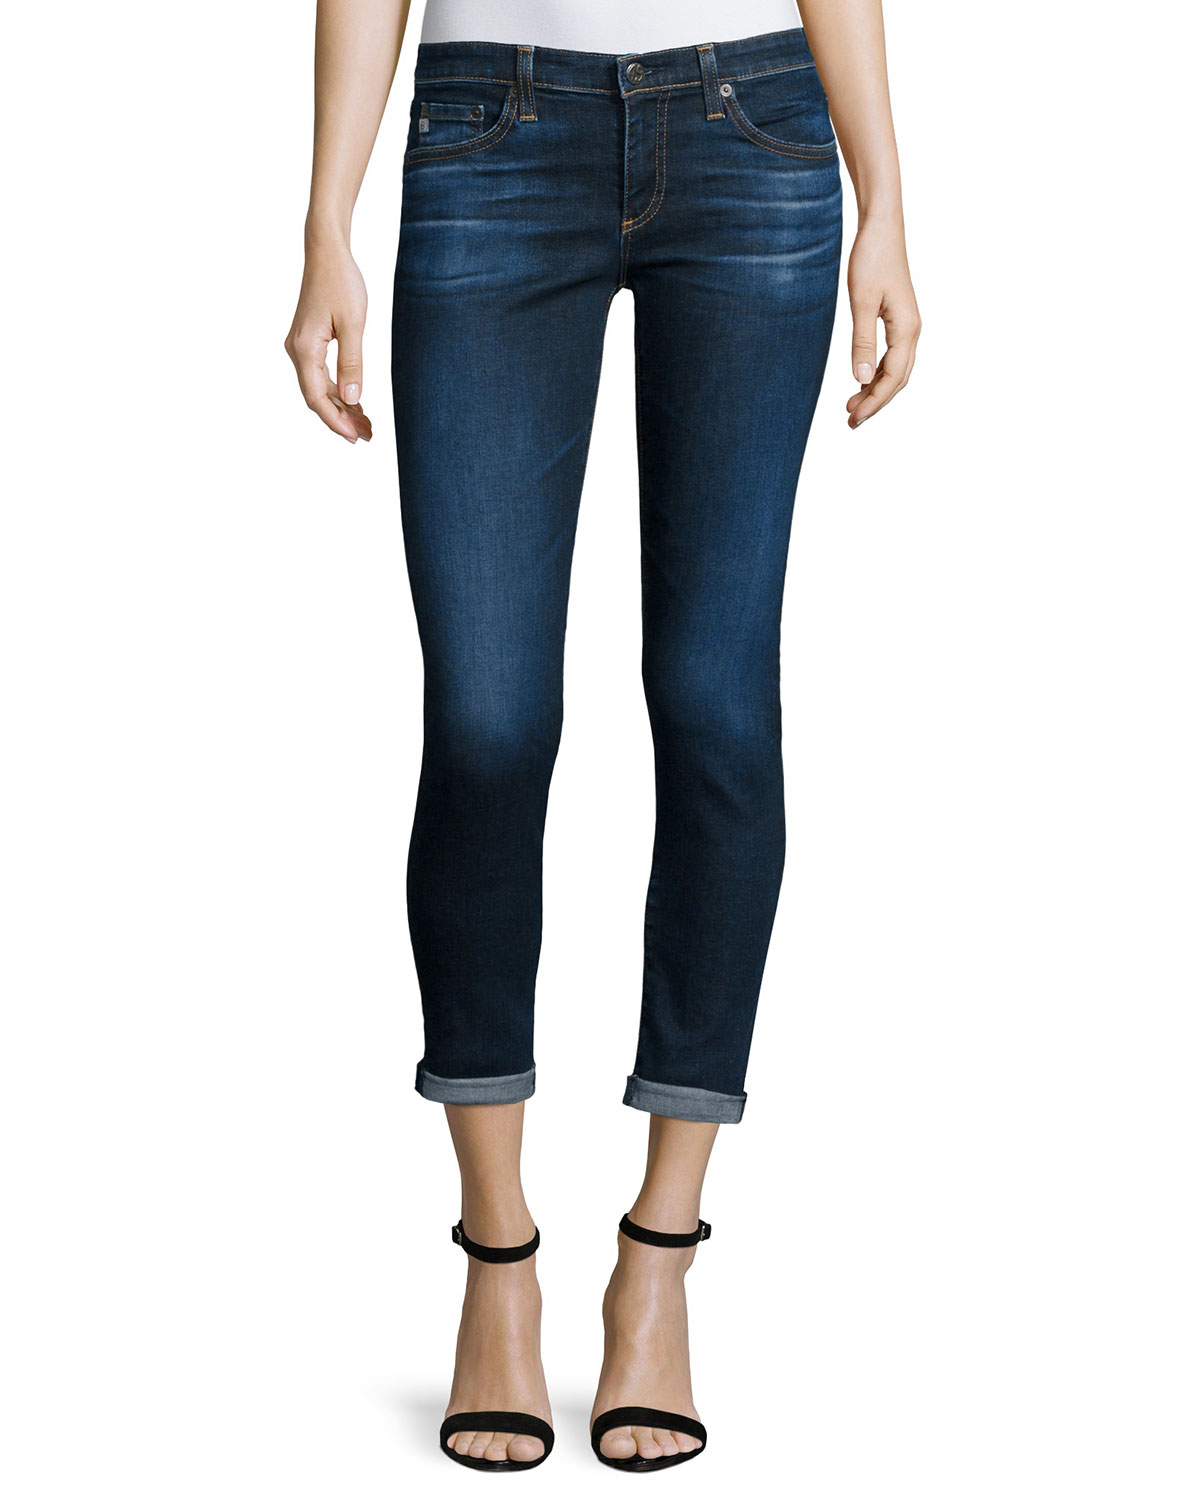 AG The Stilt Roll-Up Jeans, 2 Years Beginning, Size: 29